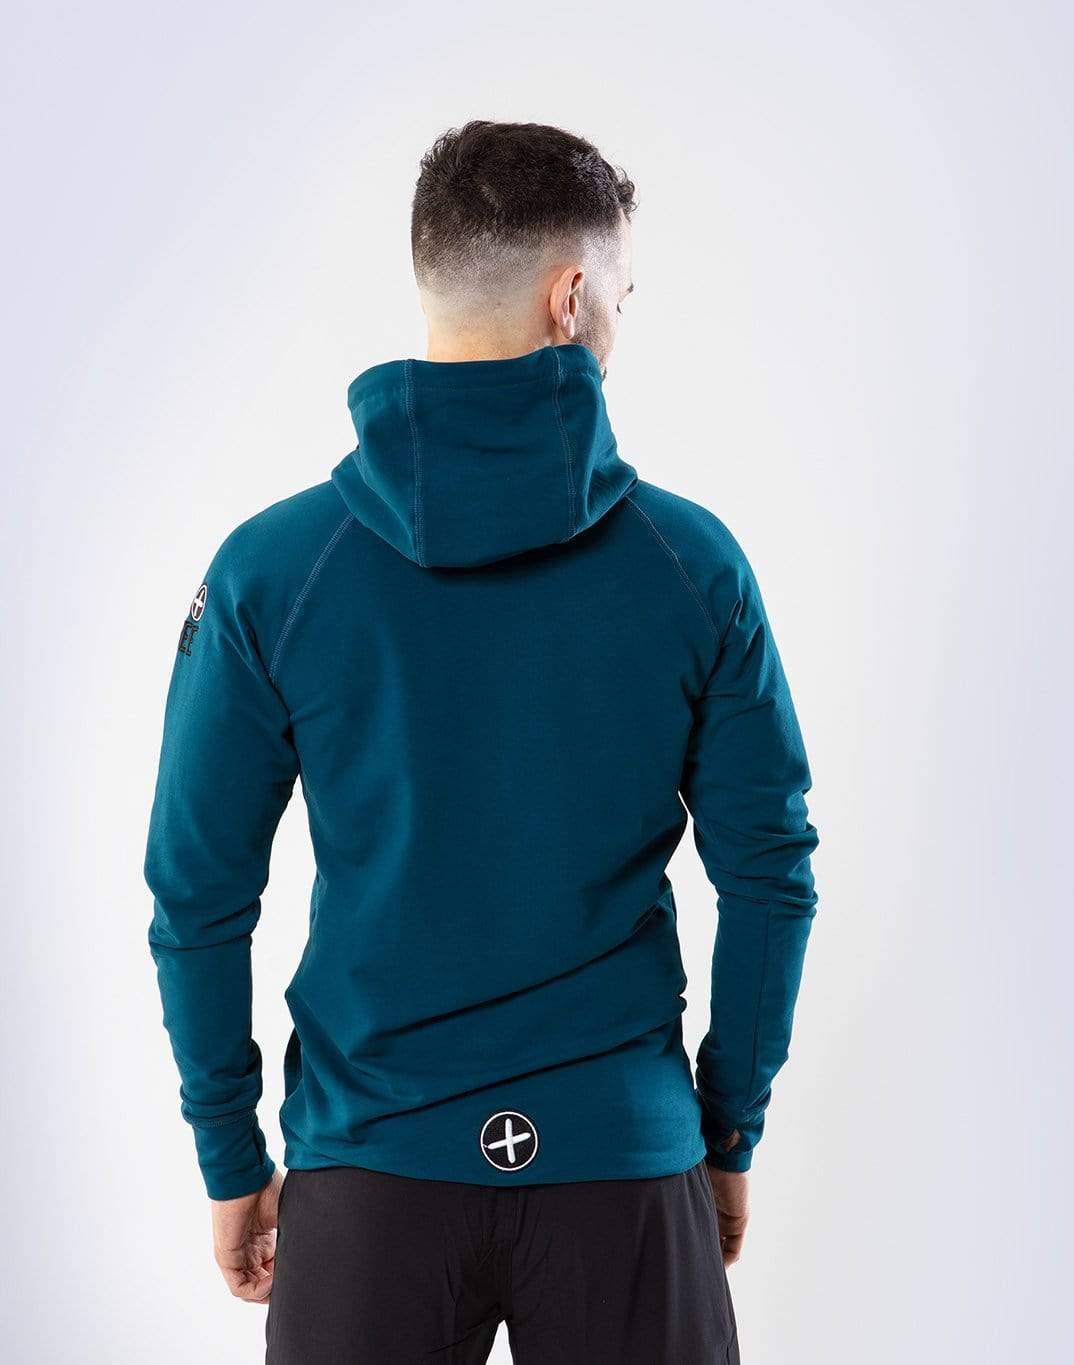 Gym Plus Coffee Classic Hoodie Men's Classic Half-Zip Hoodie in Petrol Blue Designed in Ireland